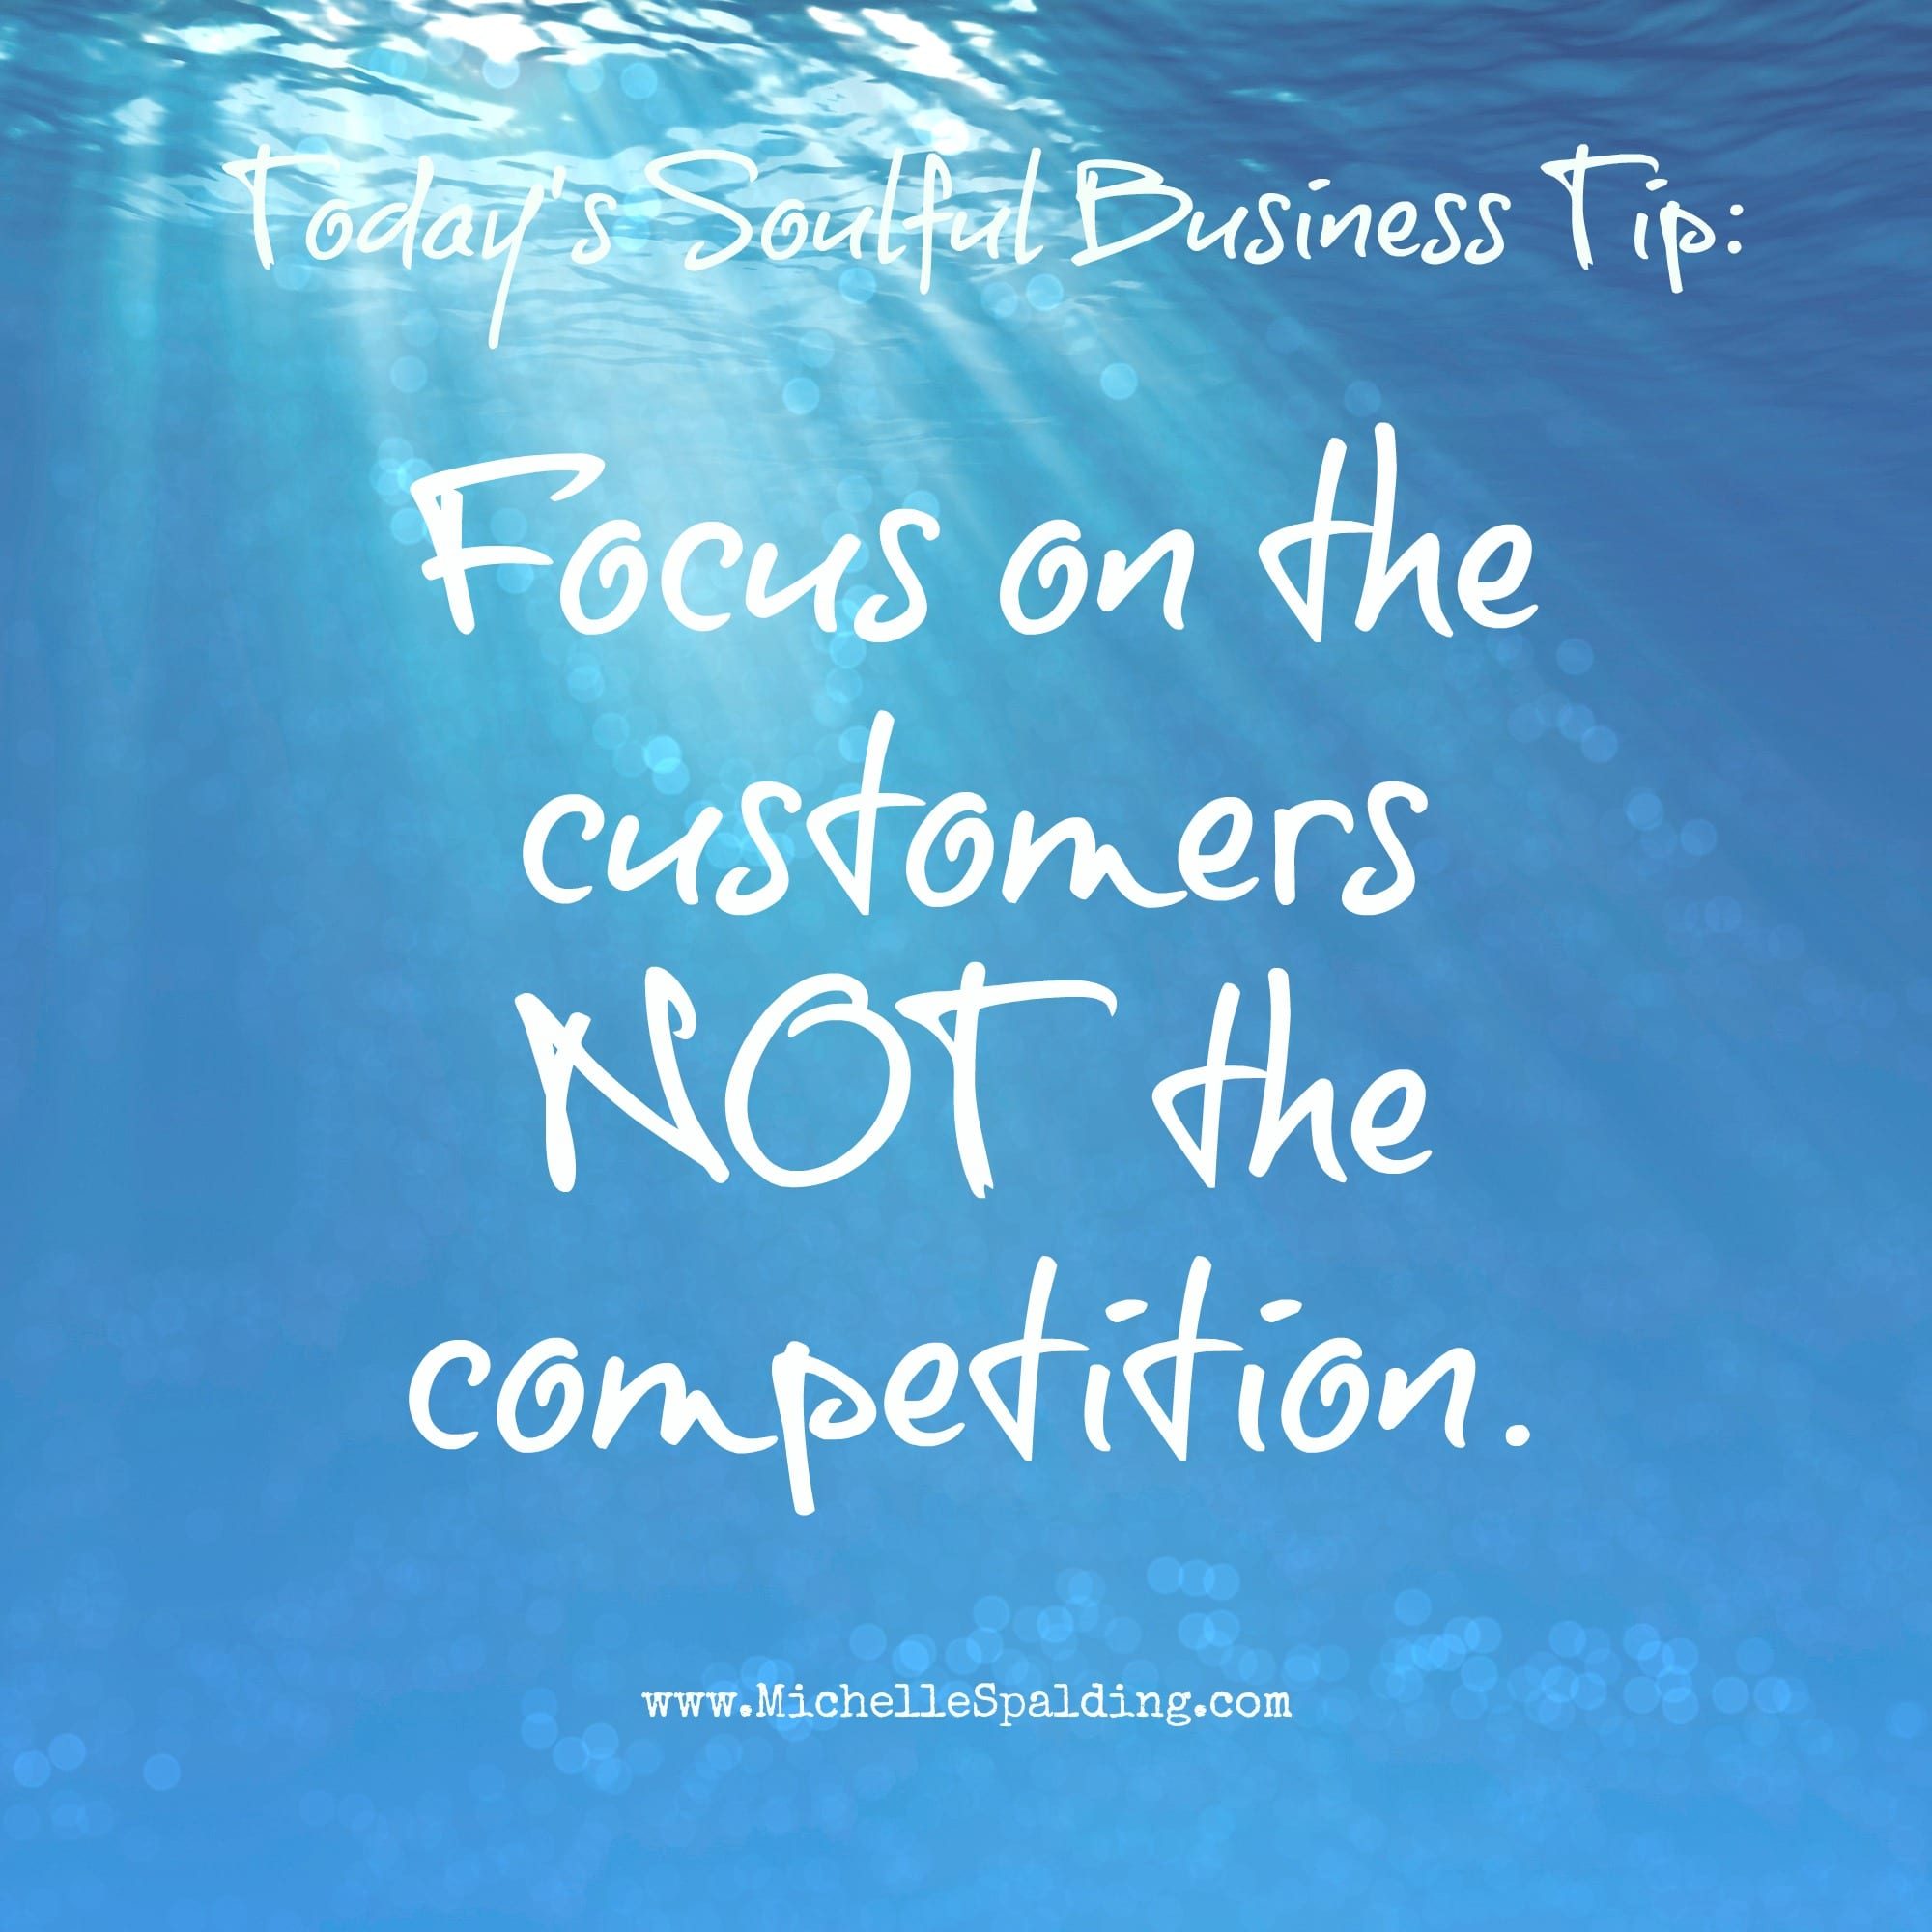 Focus on the customers NOT the competition